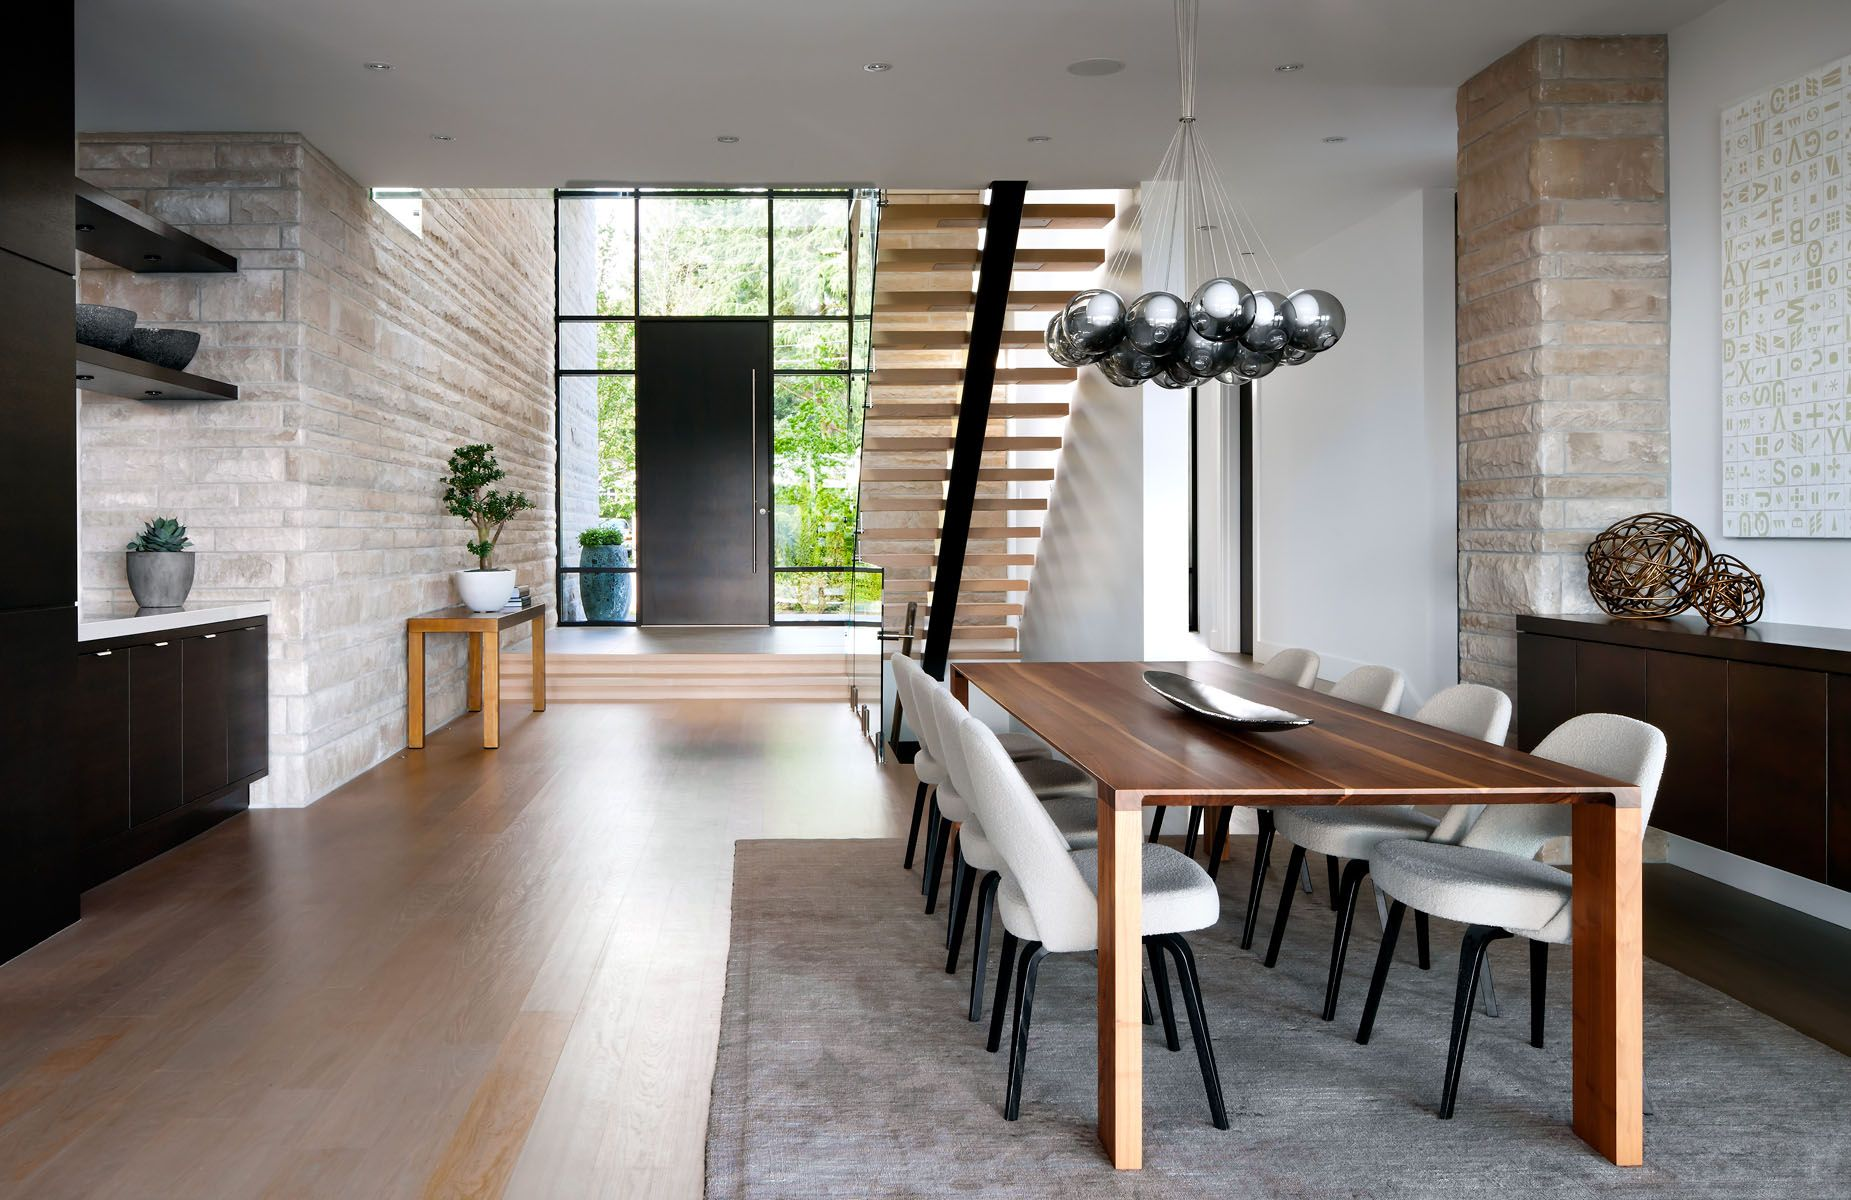 Vancouver based studio craig chevalier completed the burkehill residence in collaboration with interior designer claudia leccacorvi principal of raven